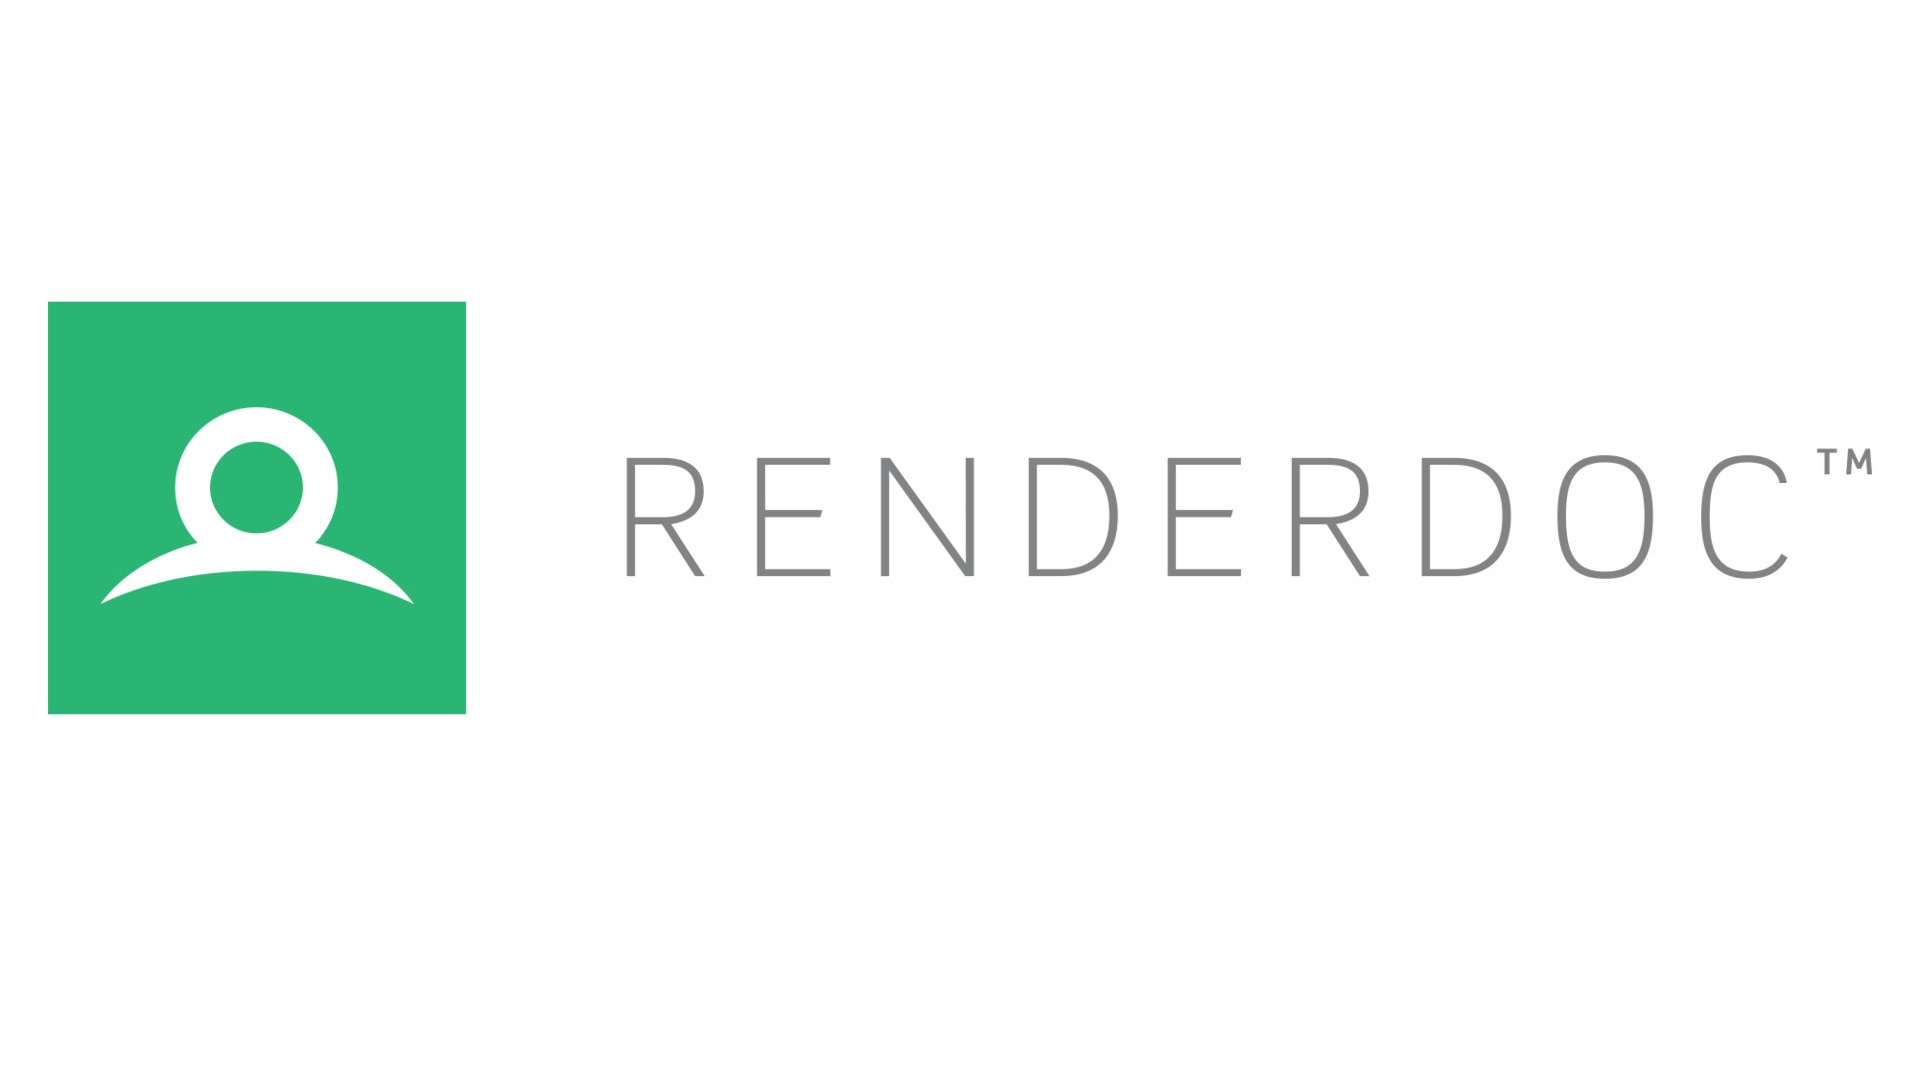 Crytek's New Renderdoc Software released for free